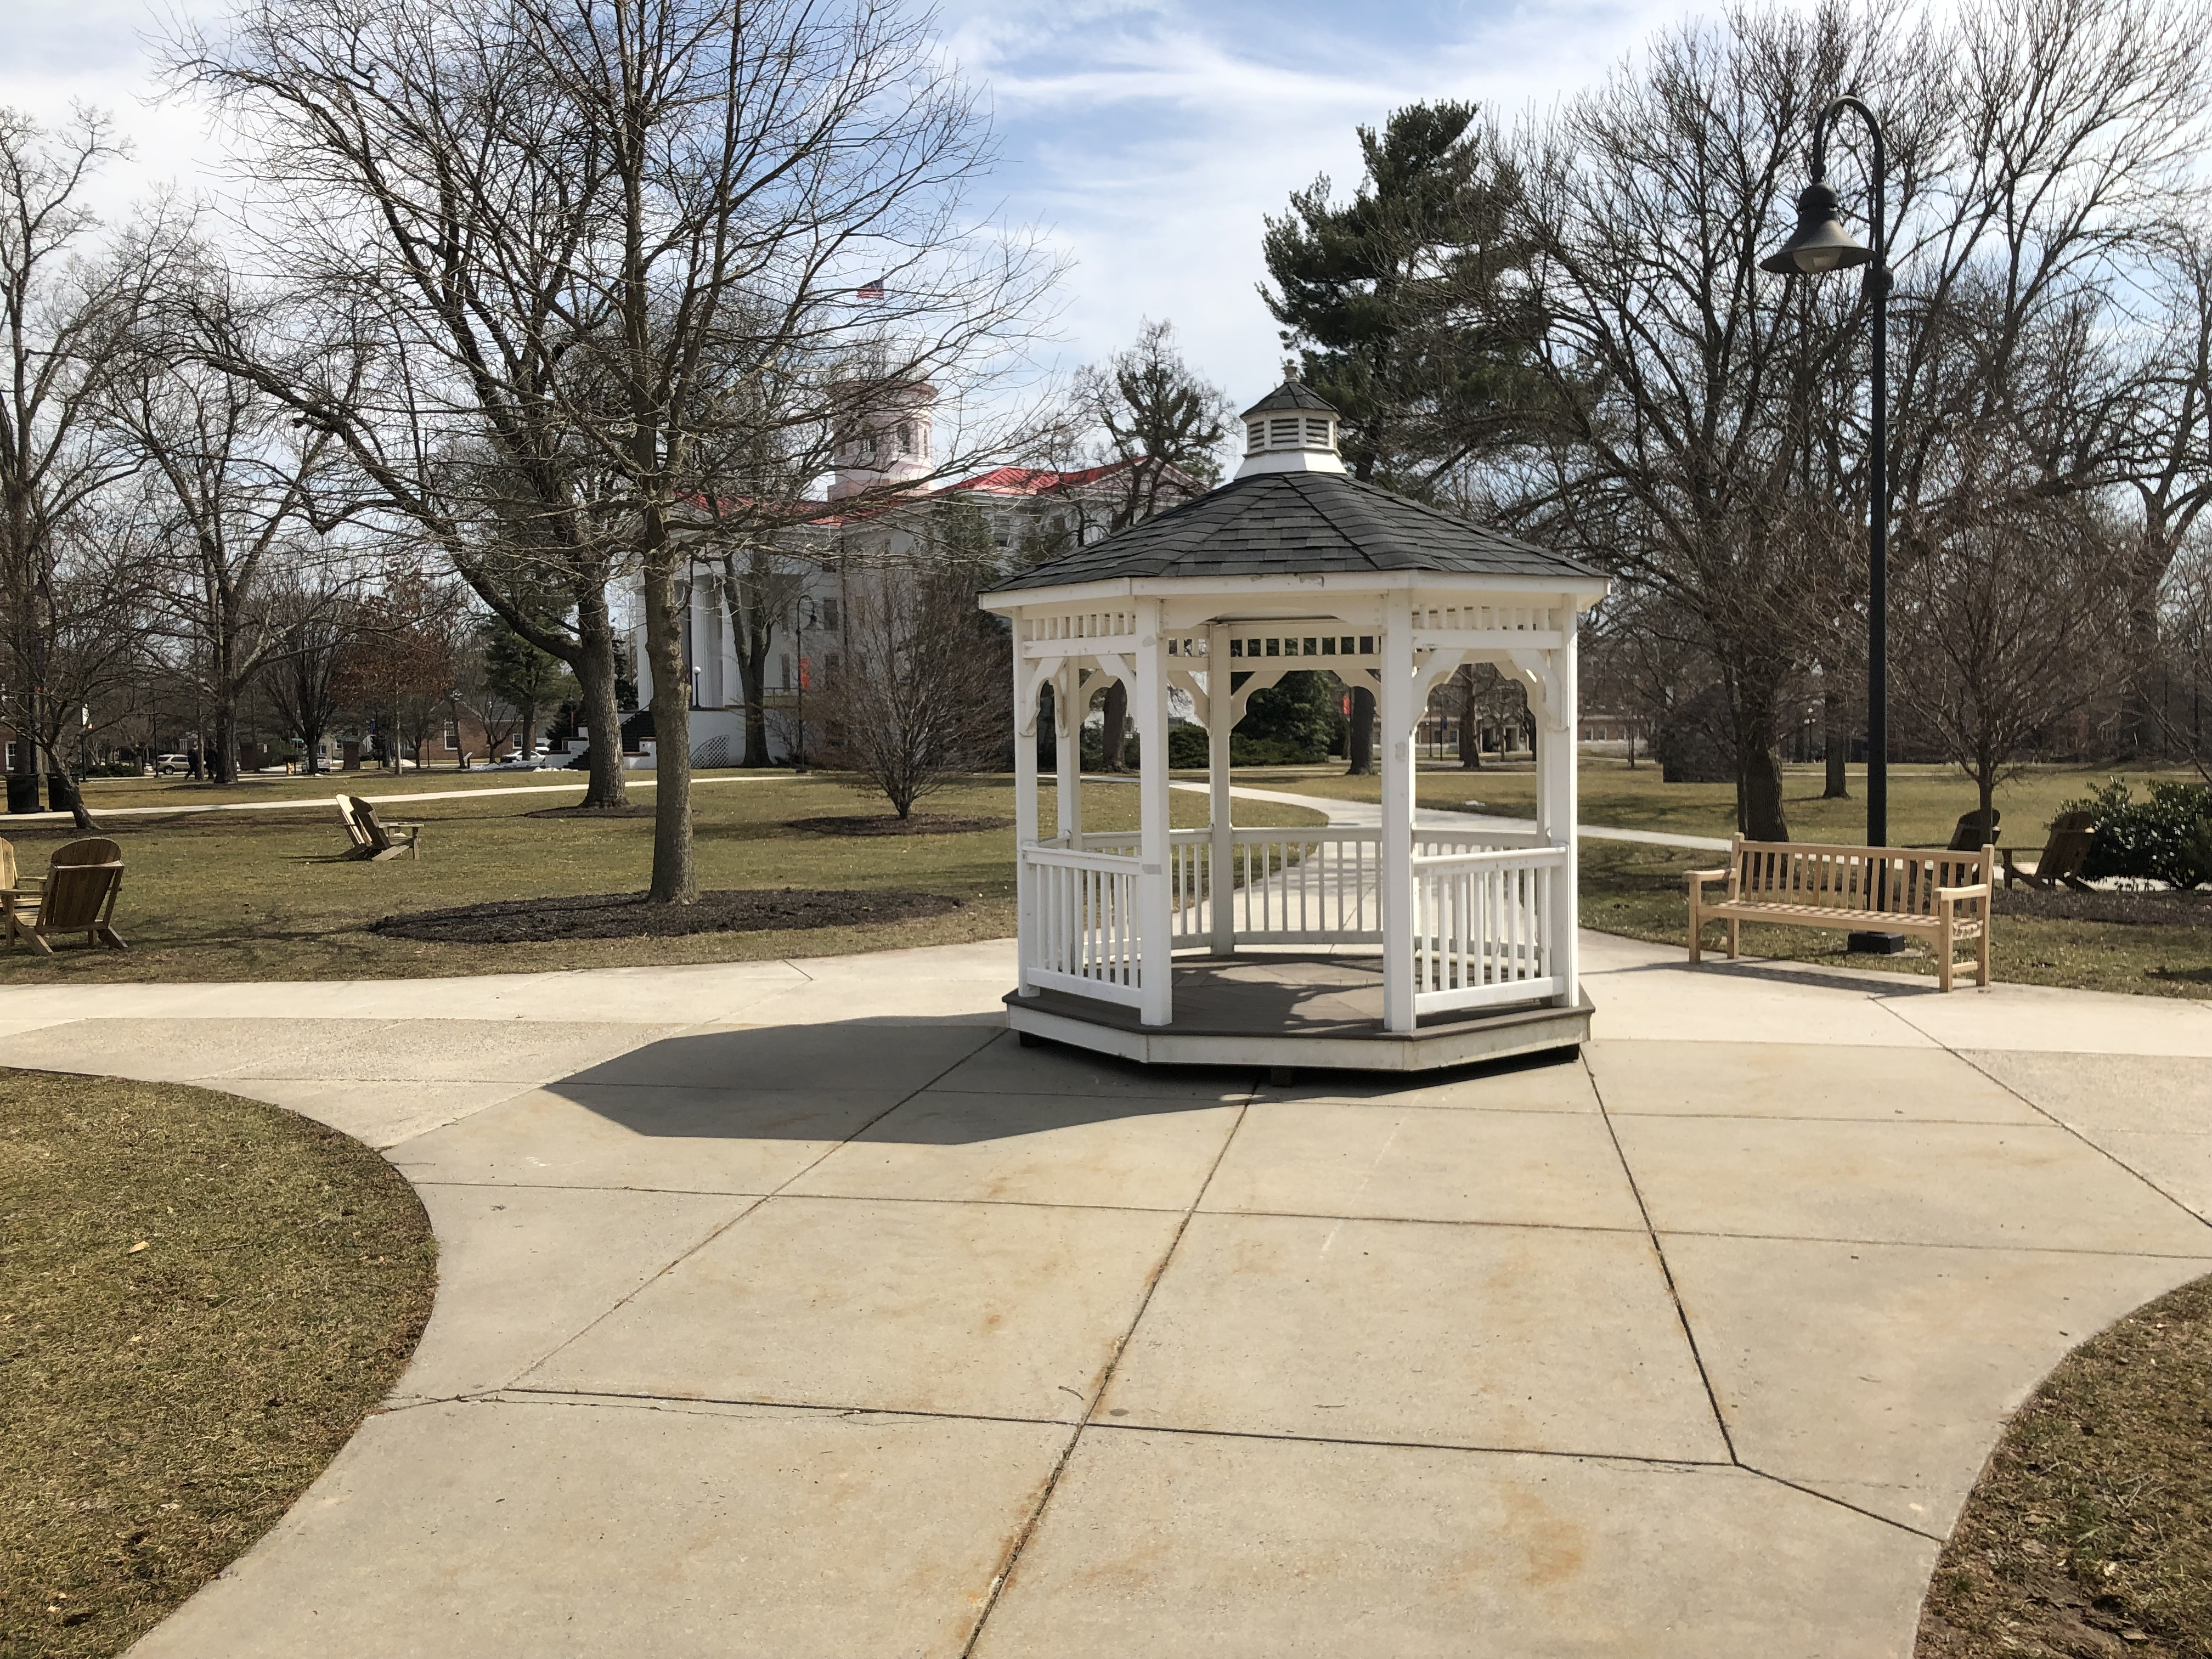 The gazebo has returned to its location at the center of campus (Photo courtesy of Joe Lynch)